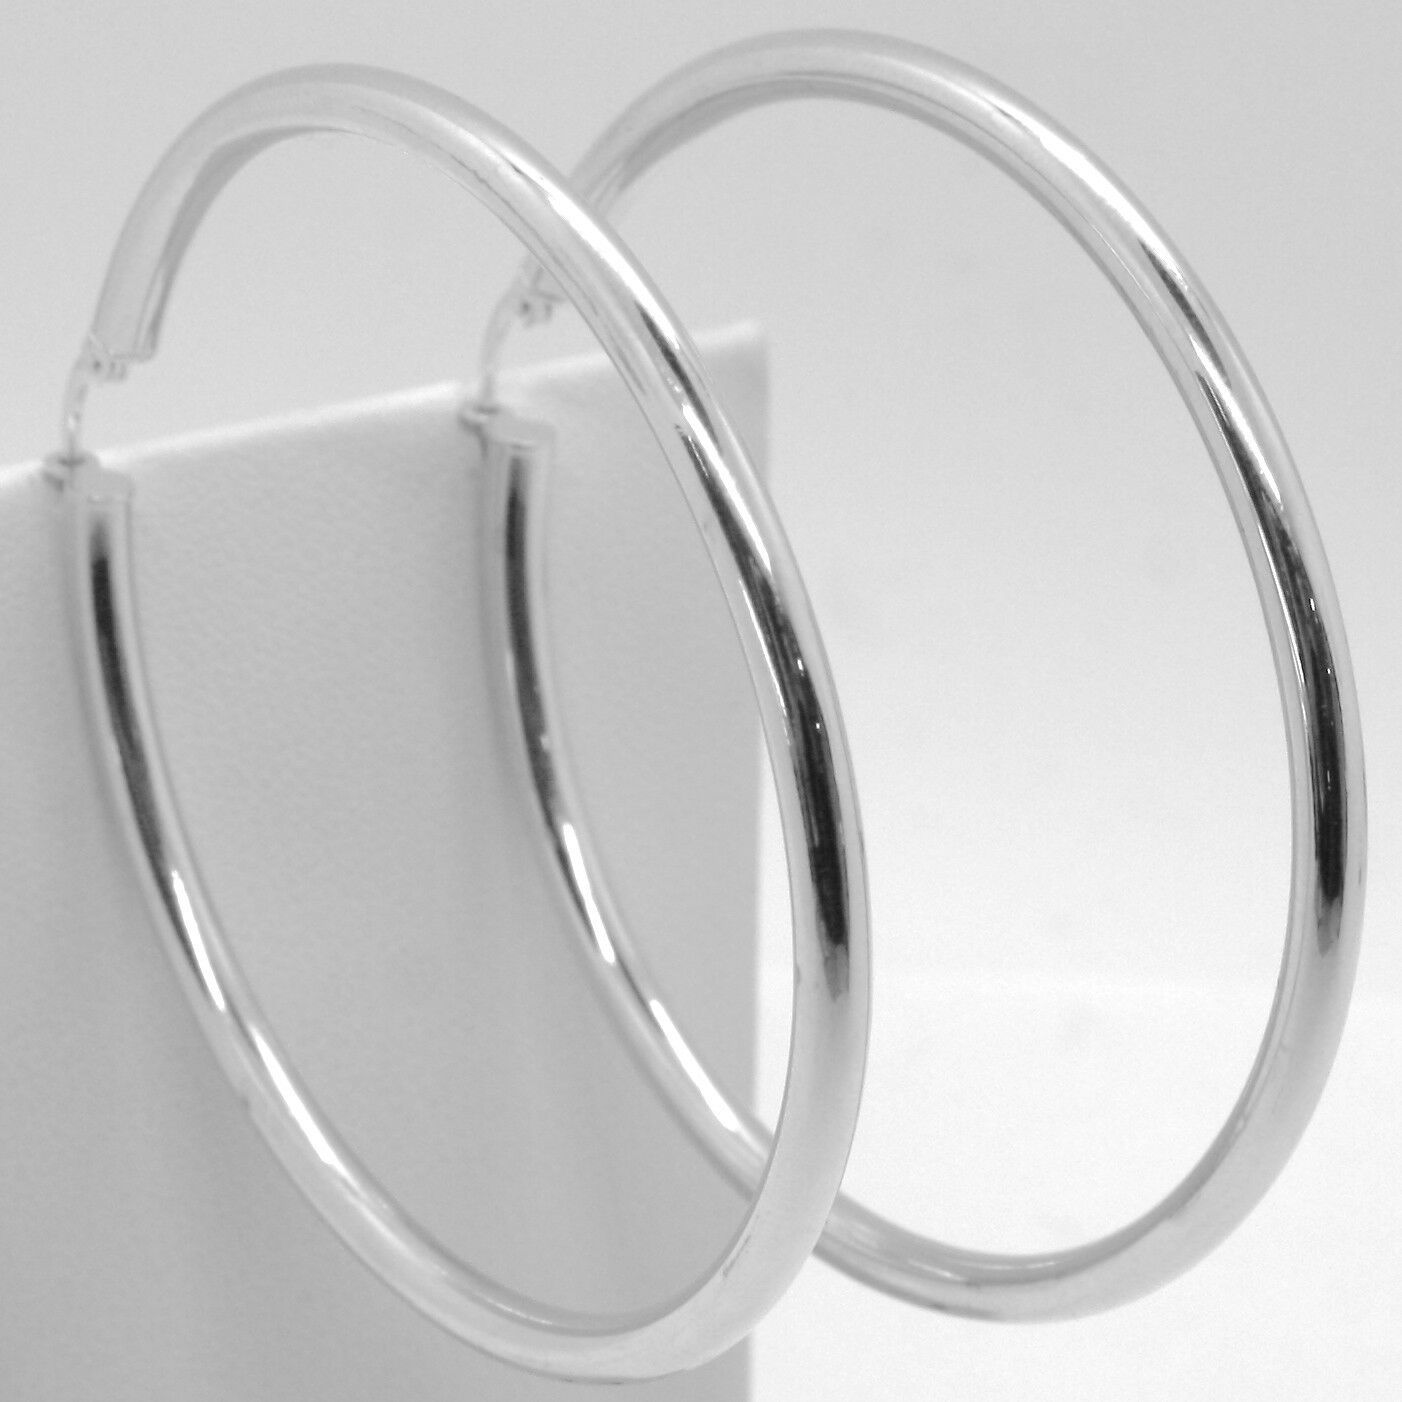 18K WHITE GOLD ROUND CIRCLE EARRINGS DIAMETER 70 MM, WIDTH 3 MM, MADE IN ITALY